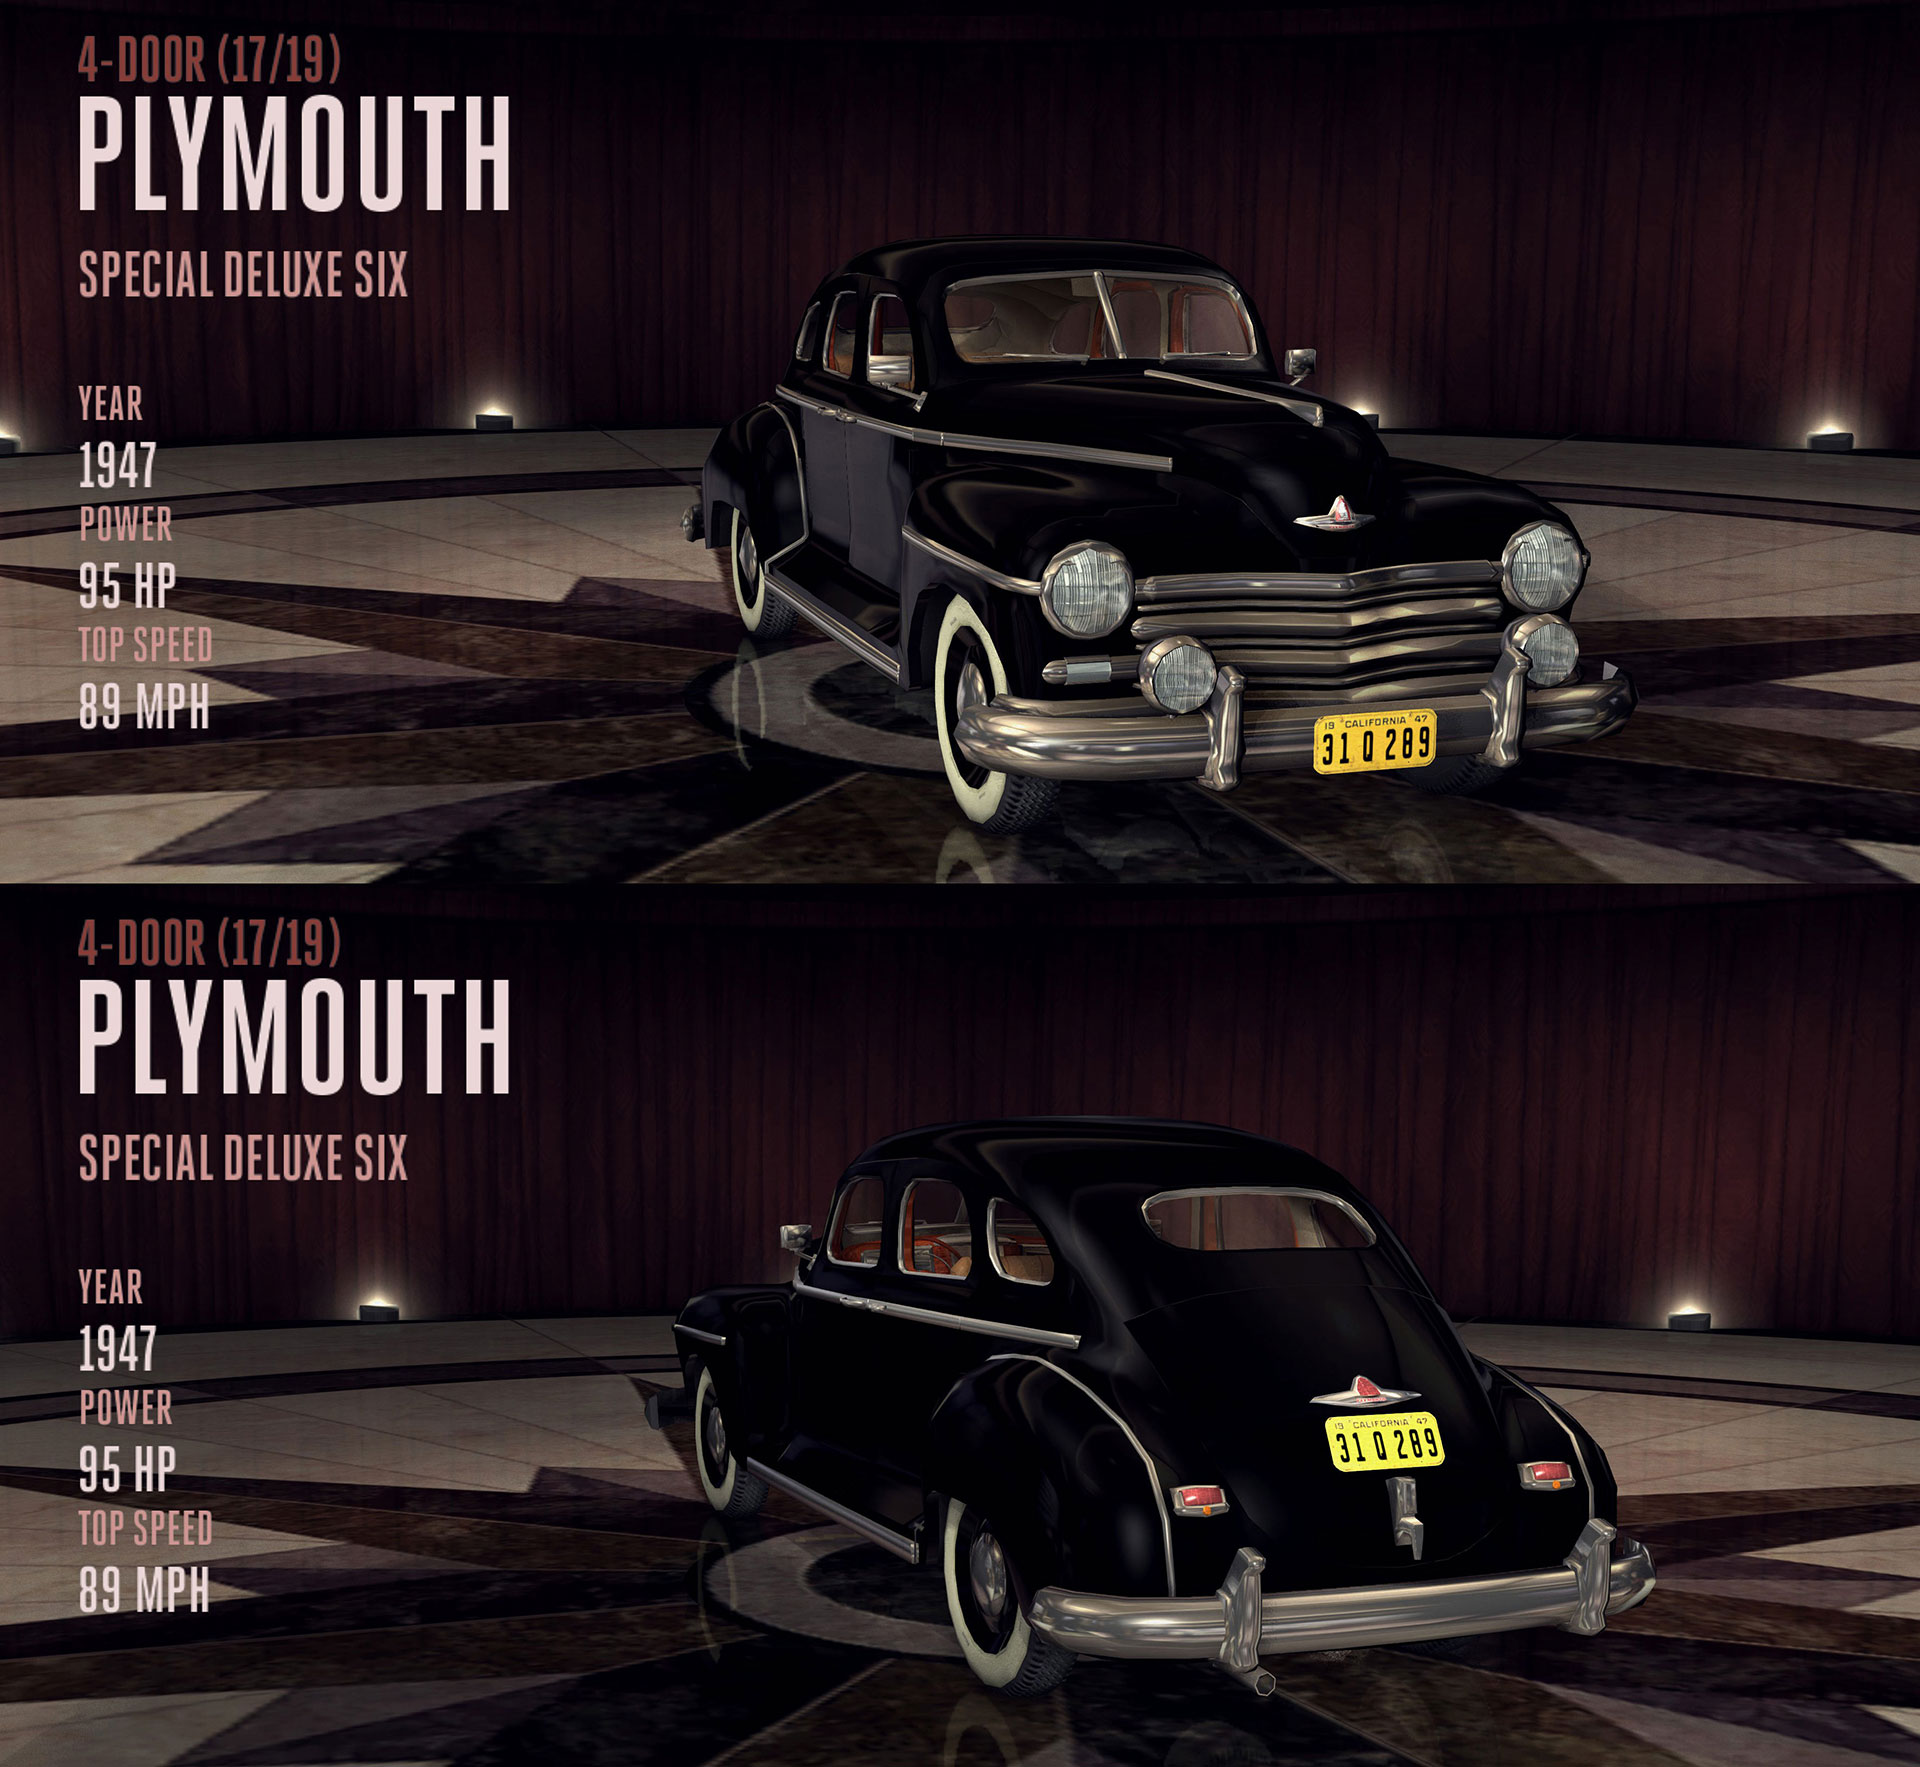 Archivo:1947-plymouth-special-deluxe-six.jpg